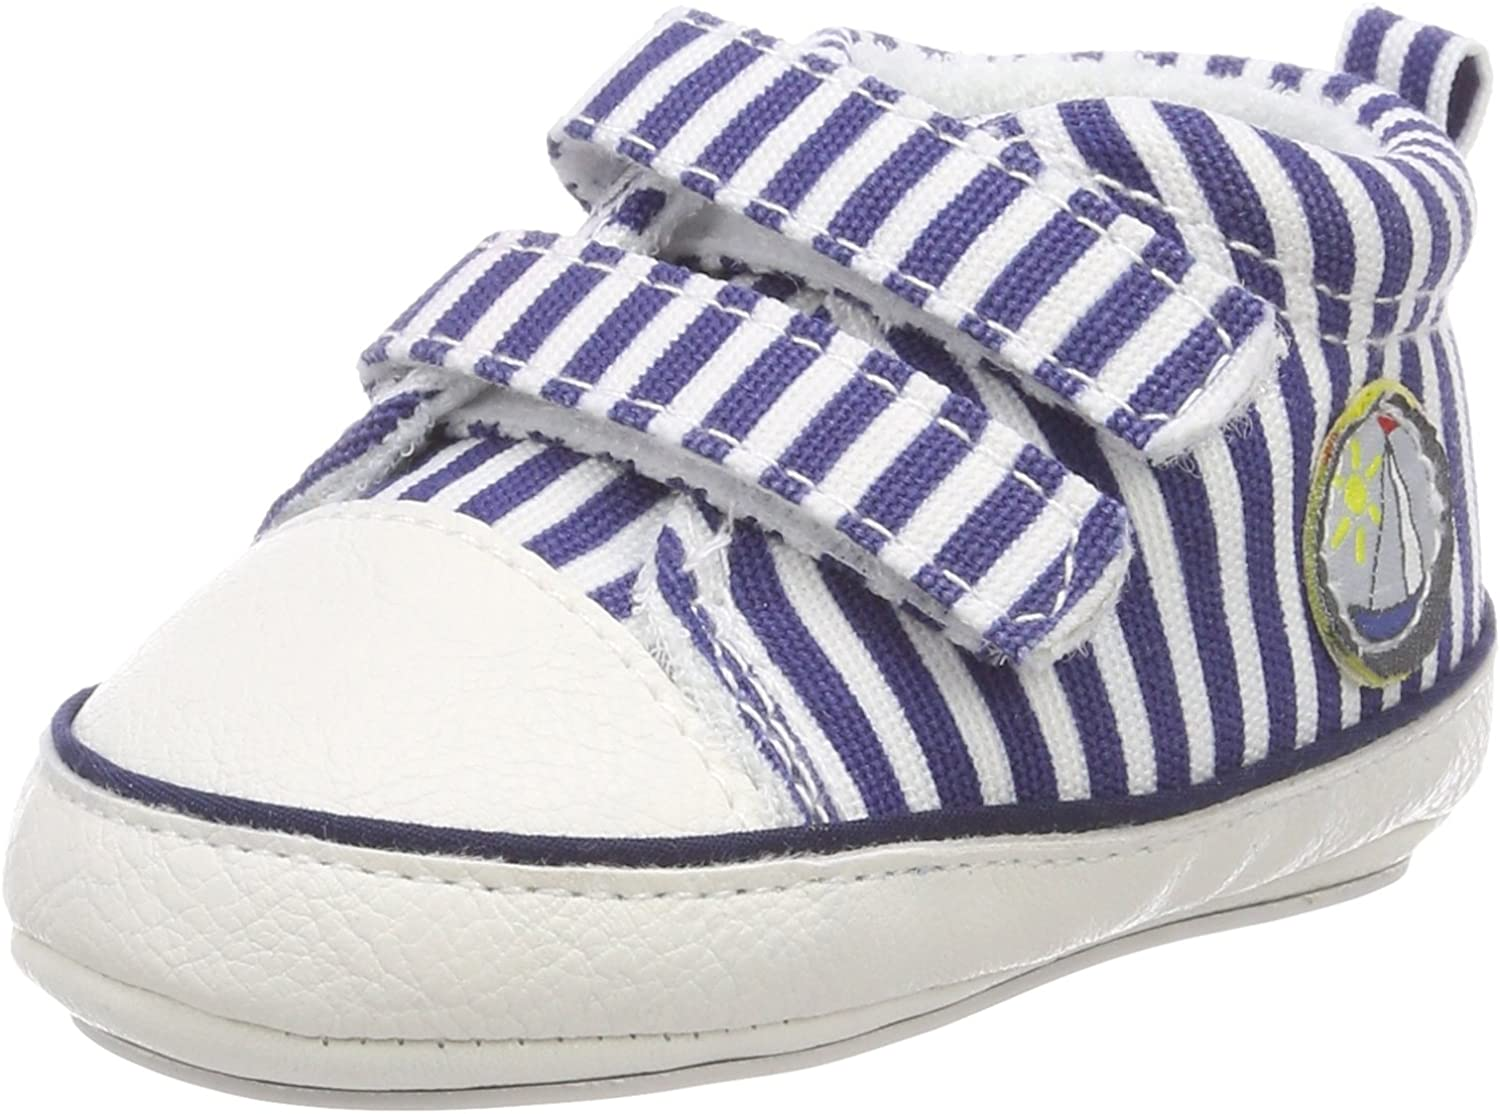 Sterntaler Boys' Baby-Schuh Trainers: Shoes